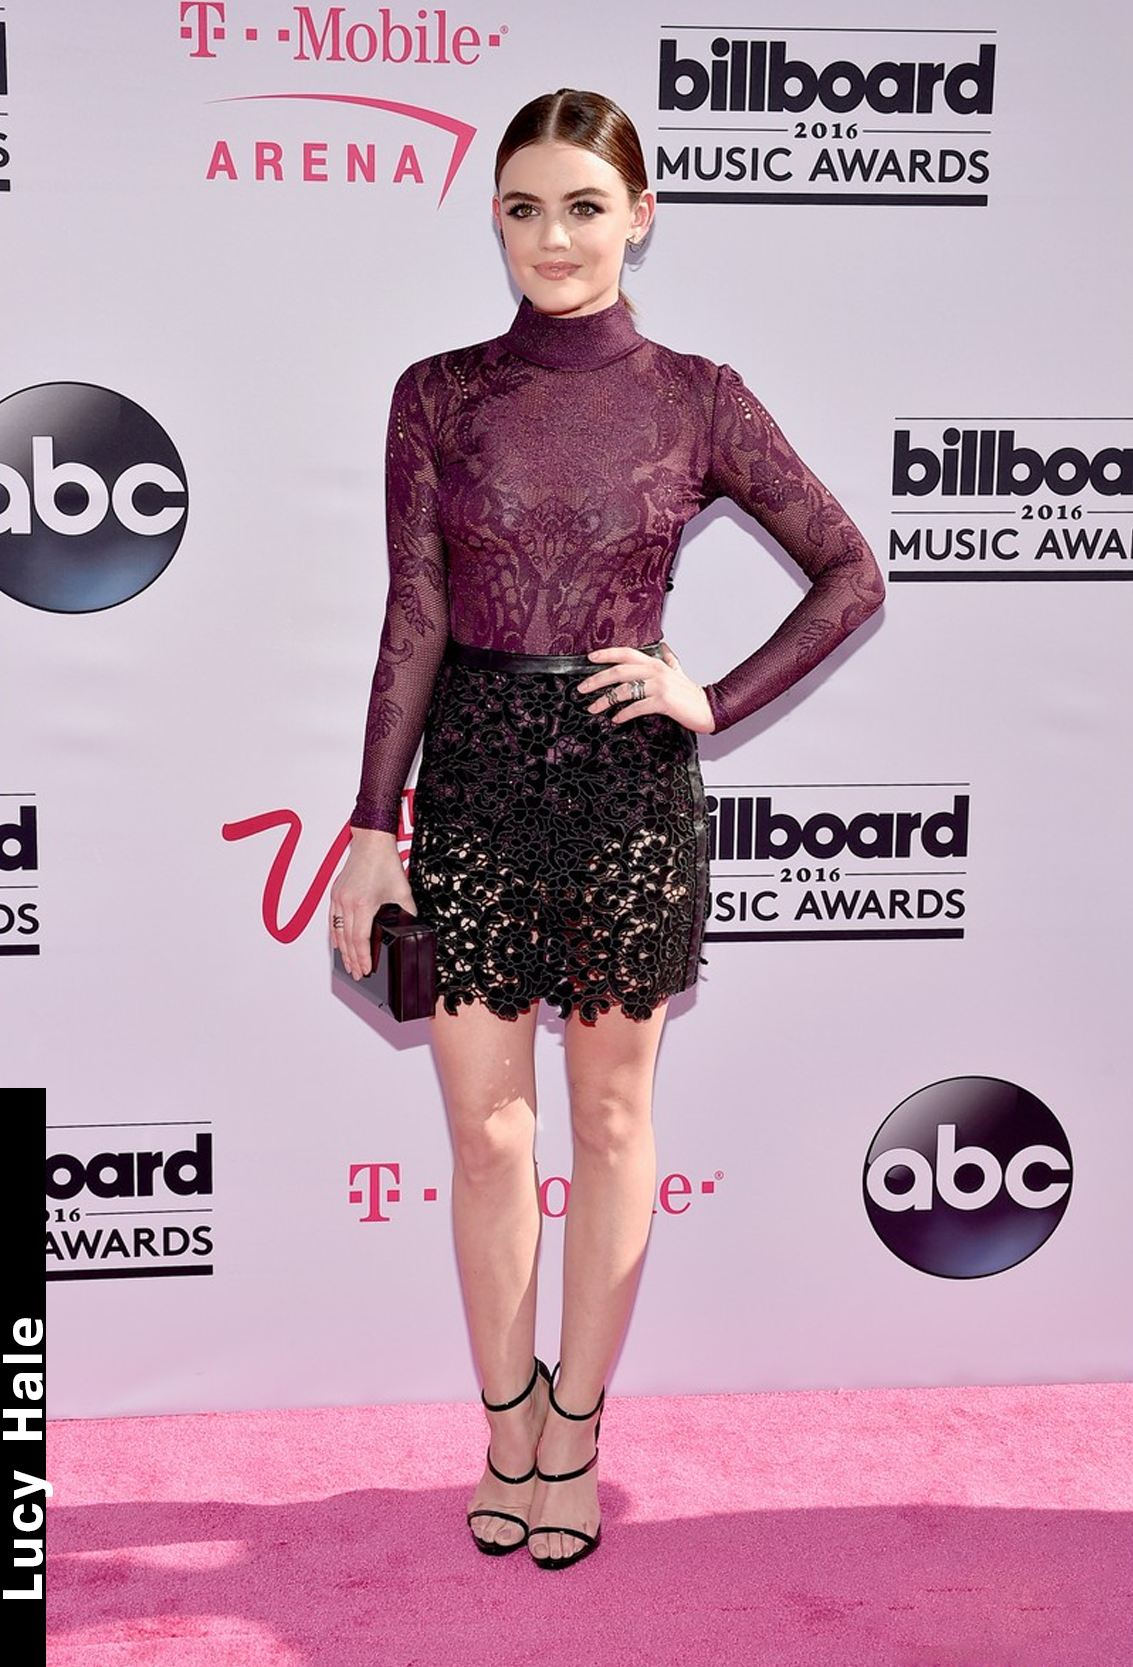 http://www.fashionfrisson.com/wp-content/uploads/2016/05/TOP-Looks-do-Billboard-Music-Awards-2016-2.png